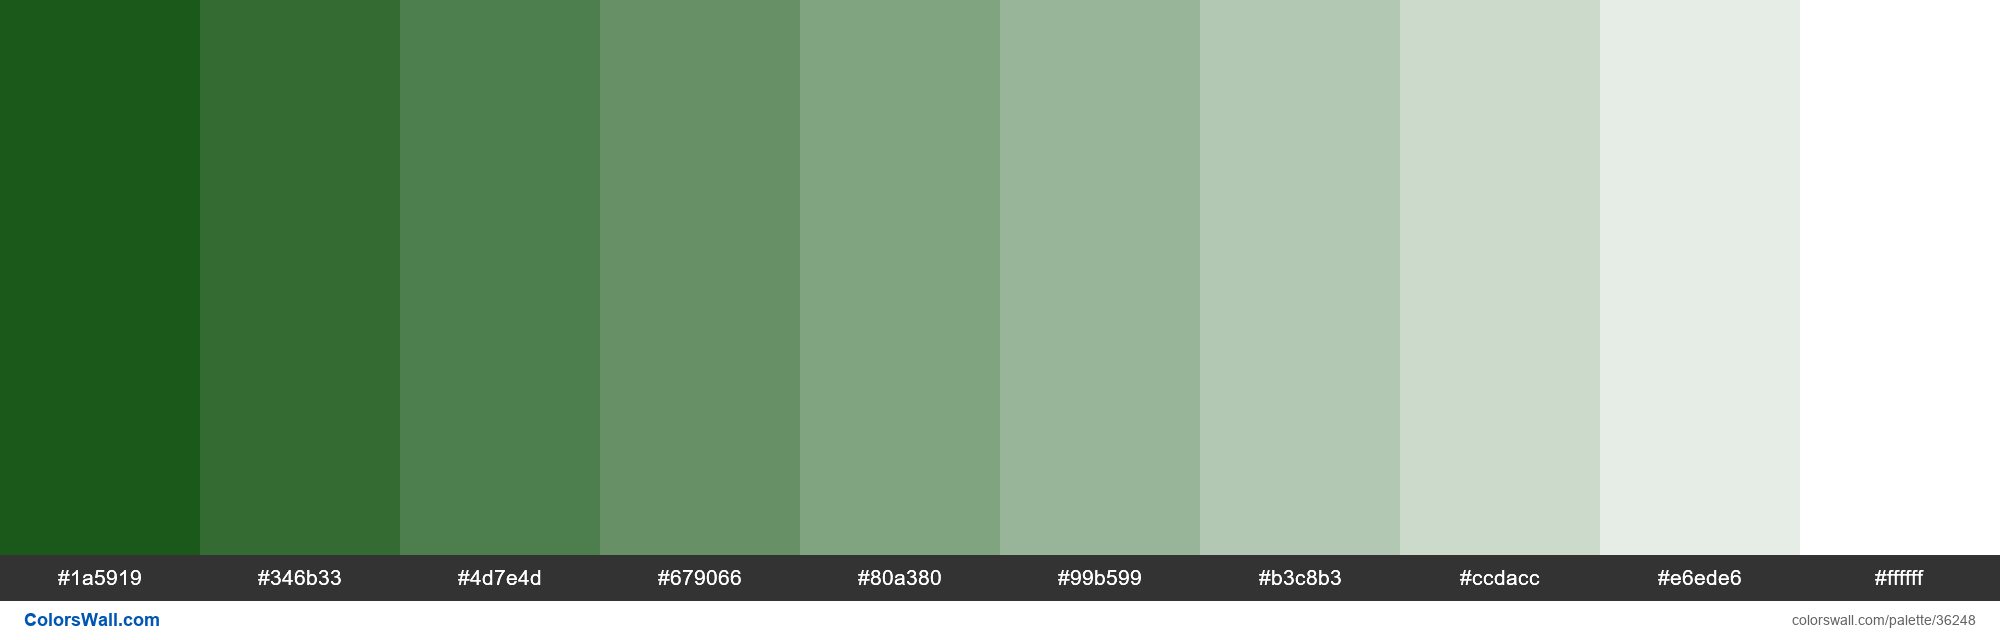 Tints XKCD Color racing green #014600 hex - #36248